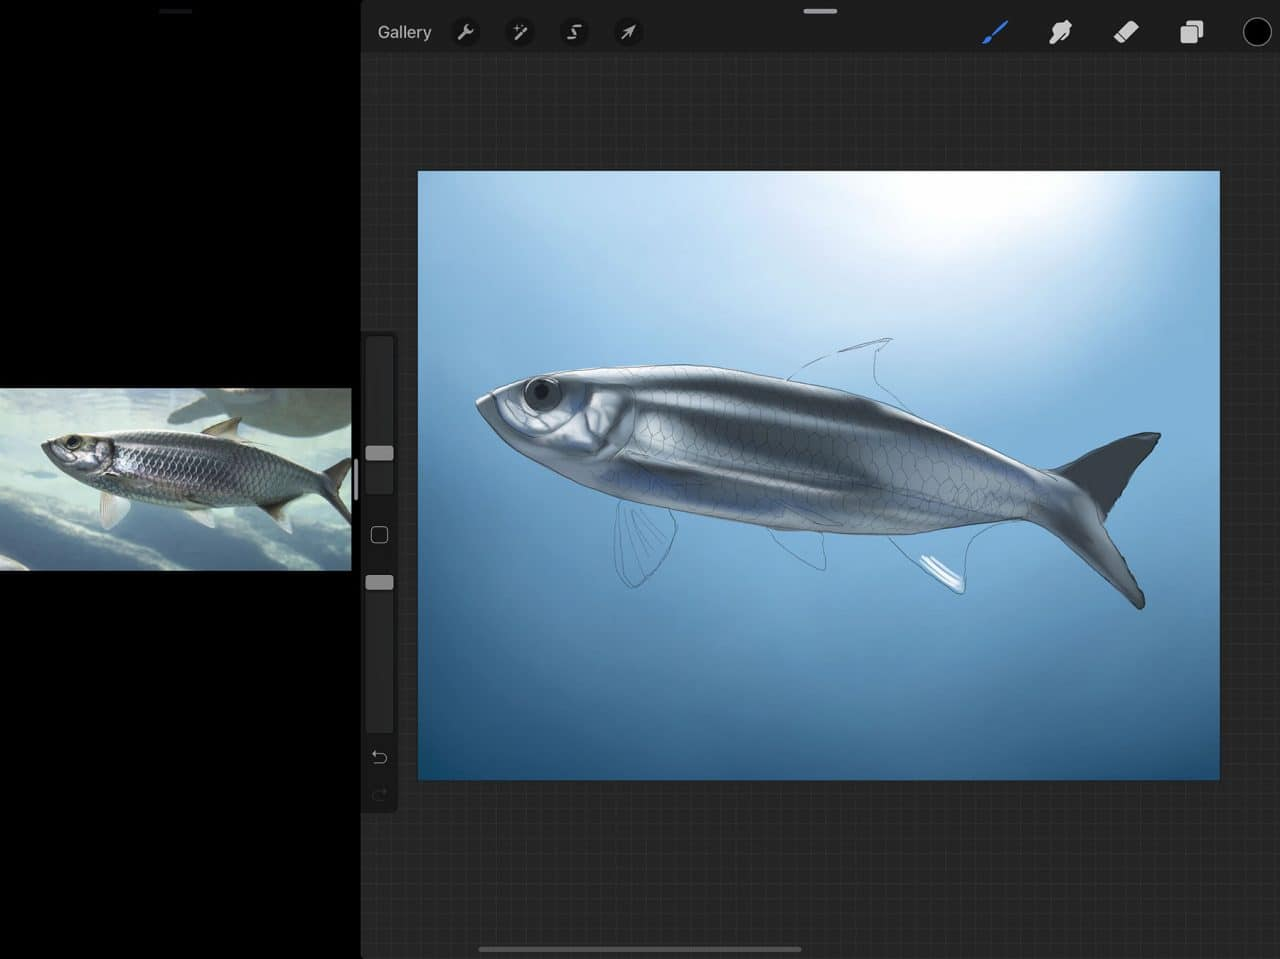 How to Draw A Fish: Procreate makes blending and creating colour gradients easy